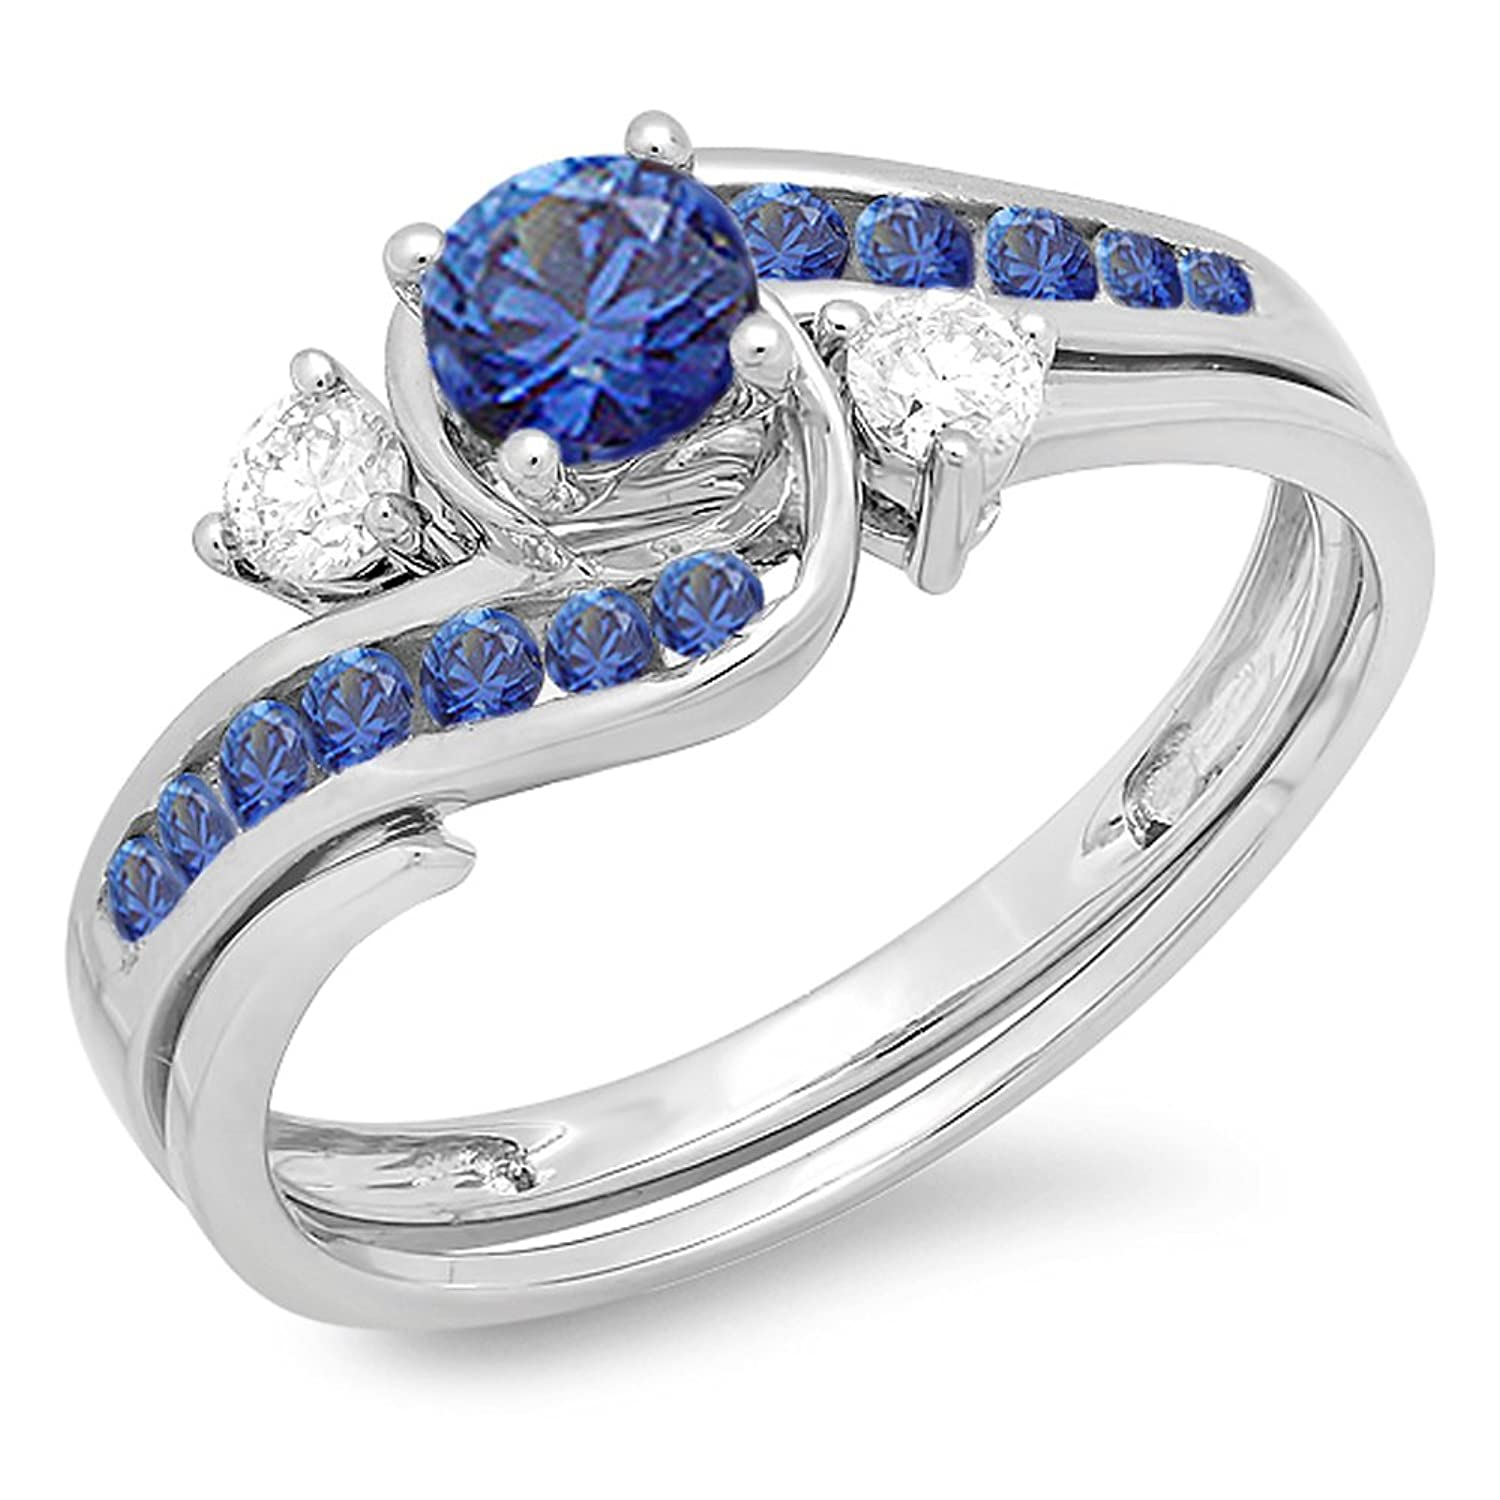 rings ring wedding michal copy diamonds set products mbfr sapphire wave bendzel sapphires